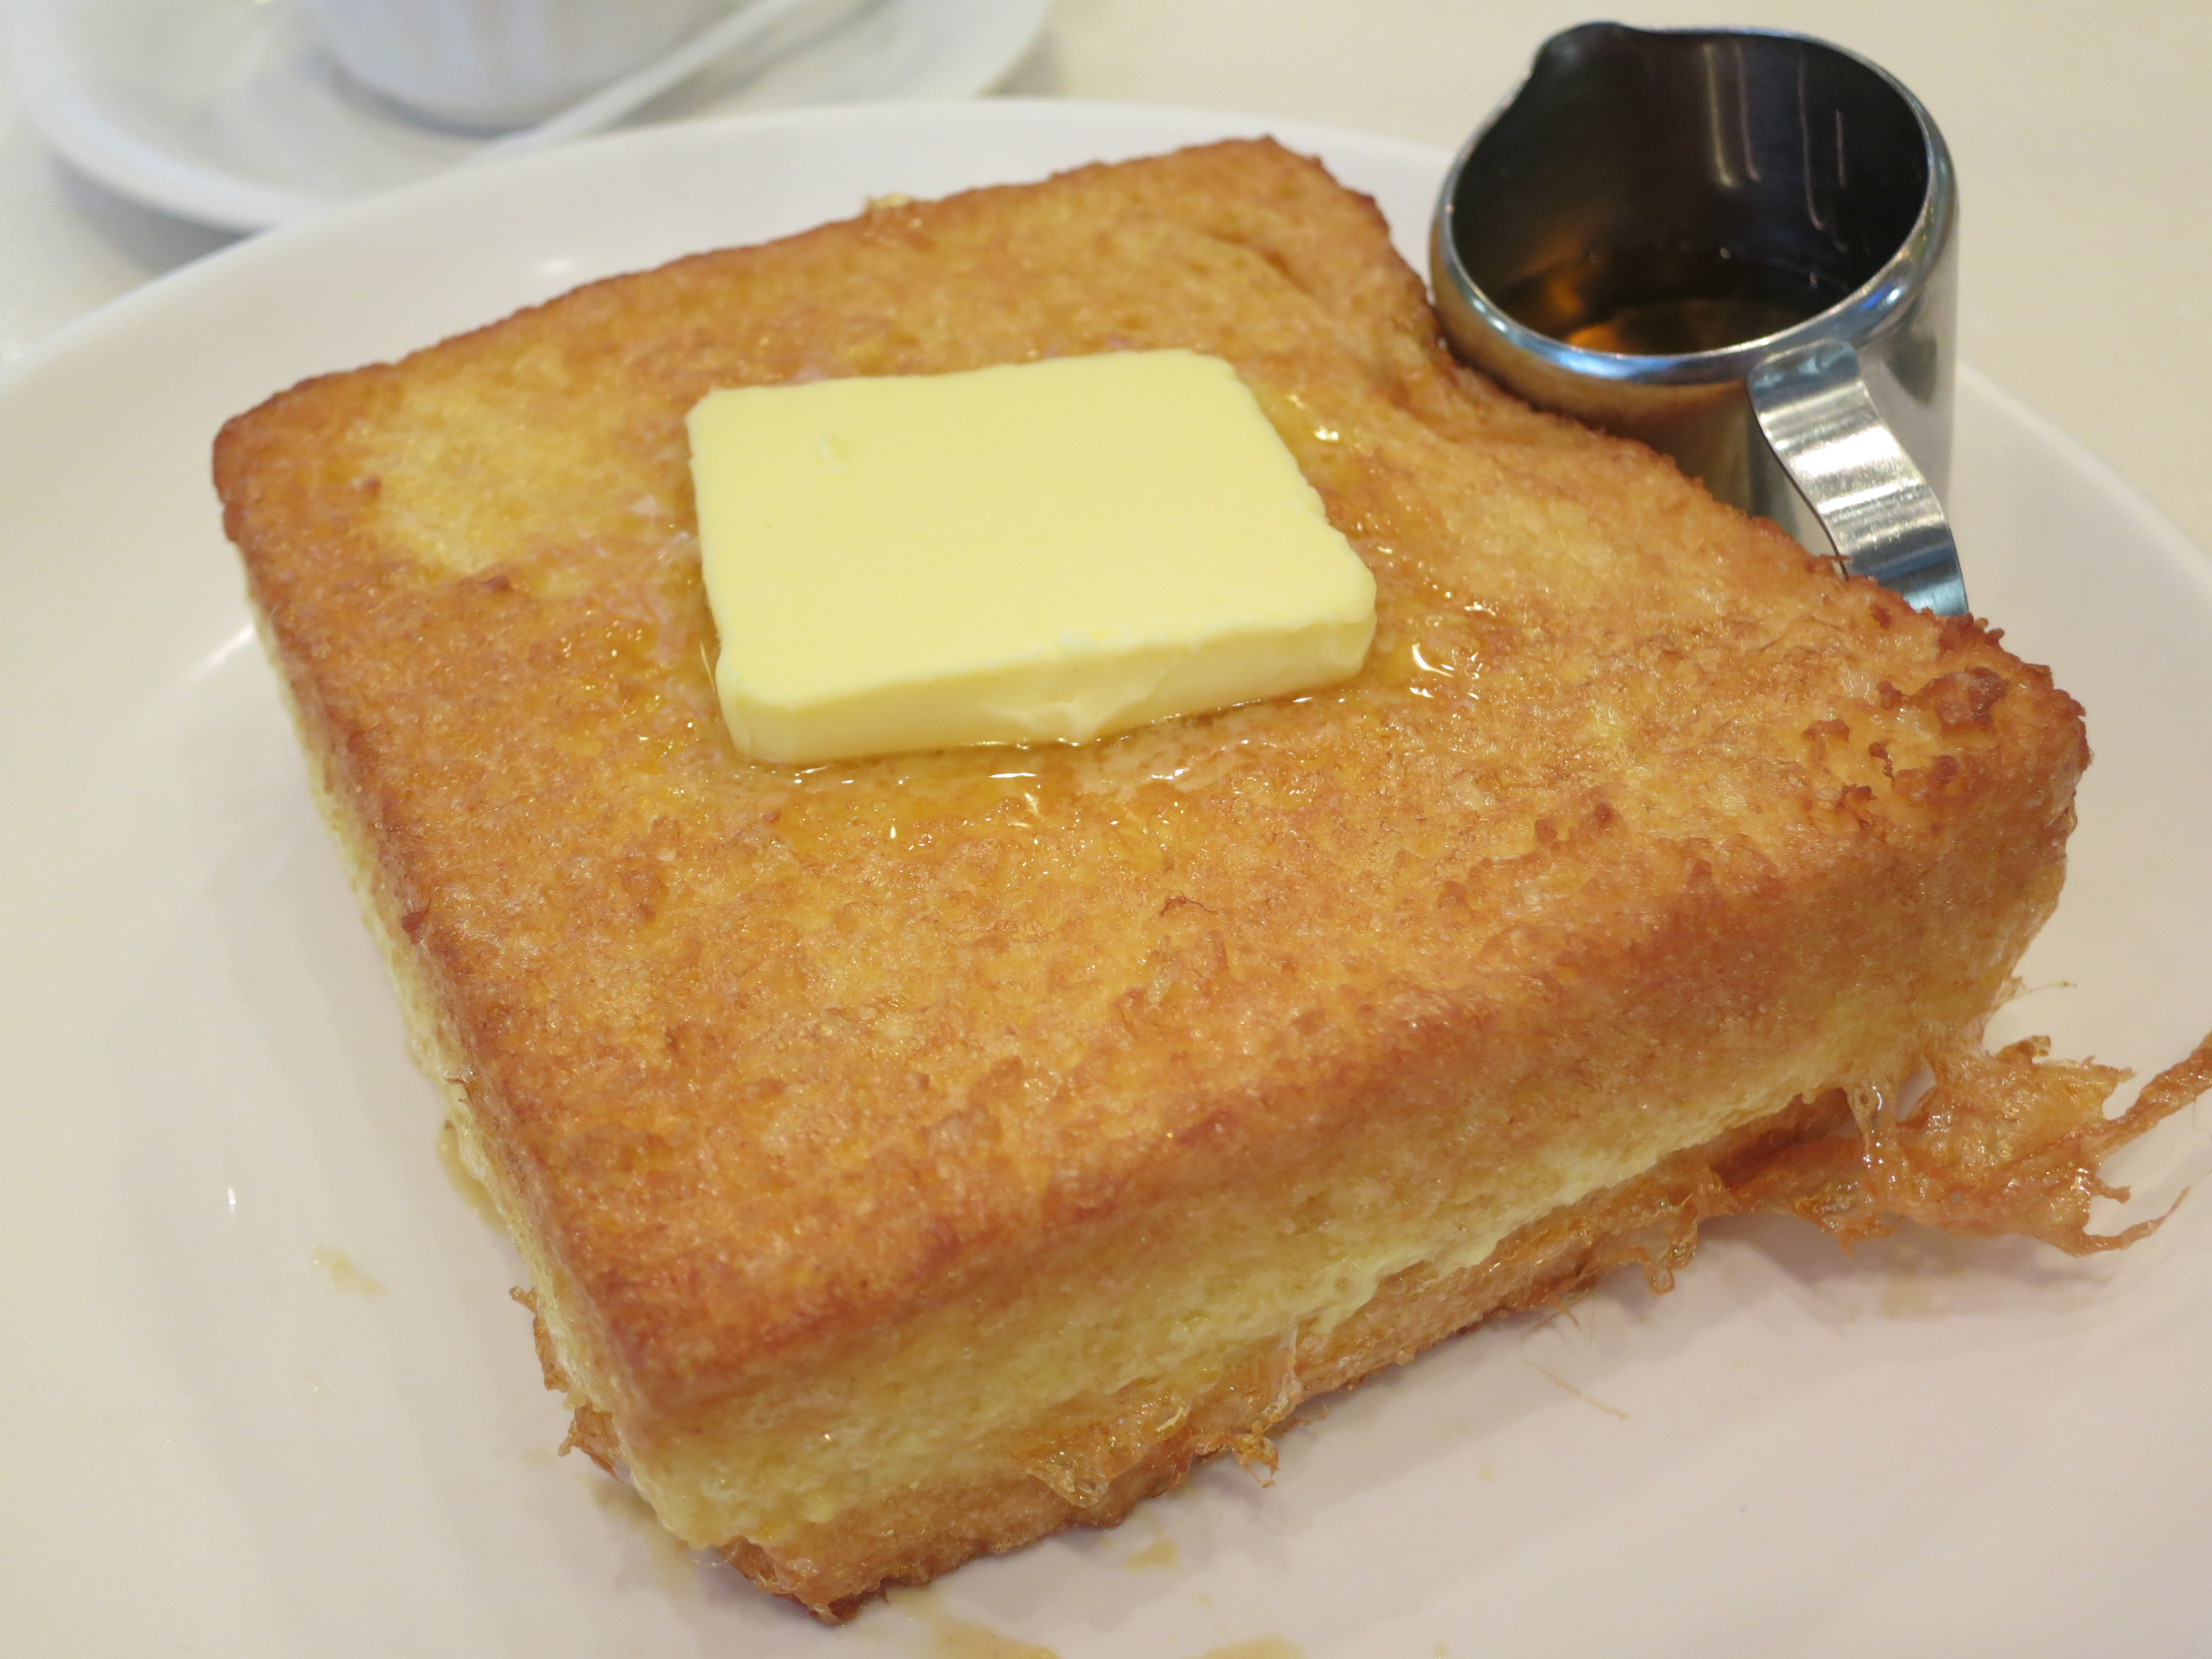 Food 1 Hk Style French Toast Temporarily Lost